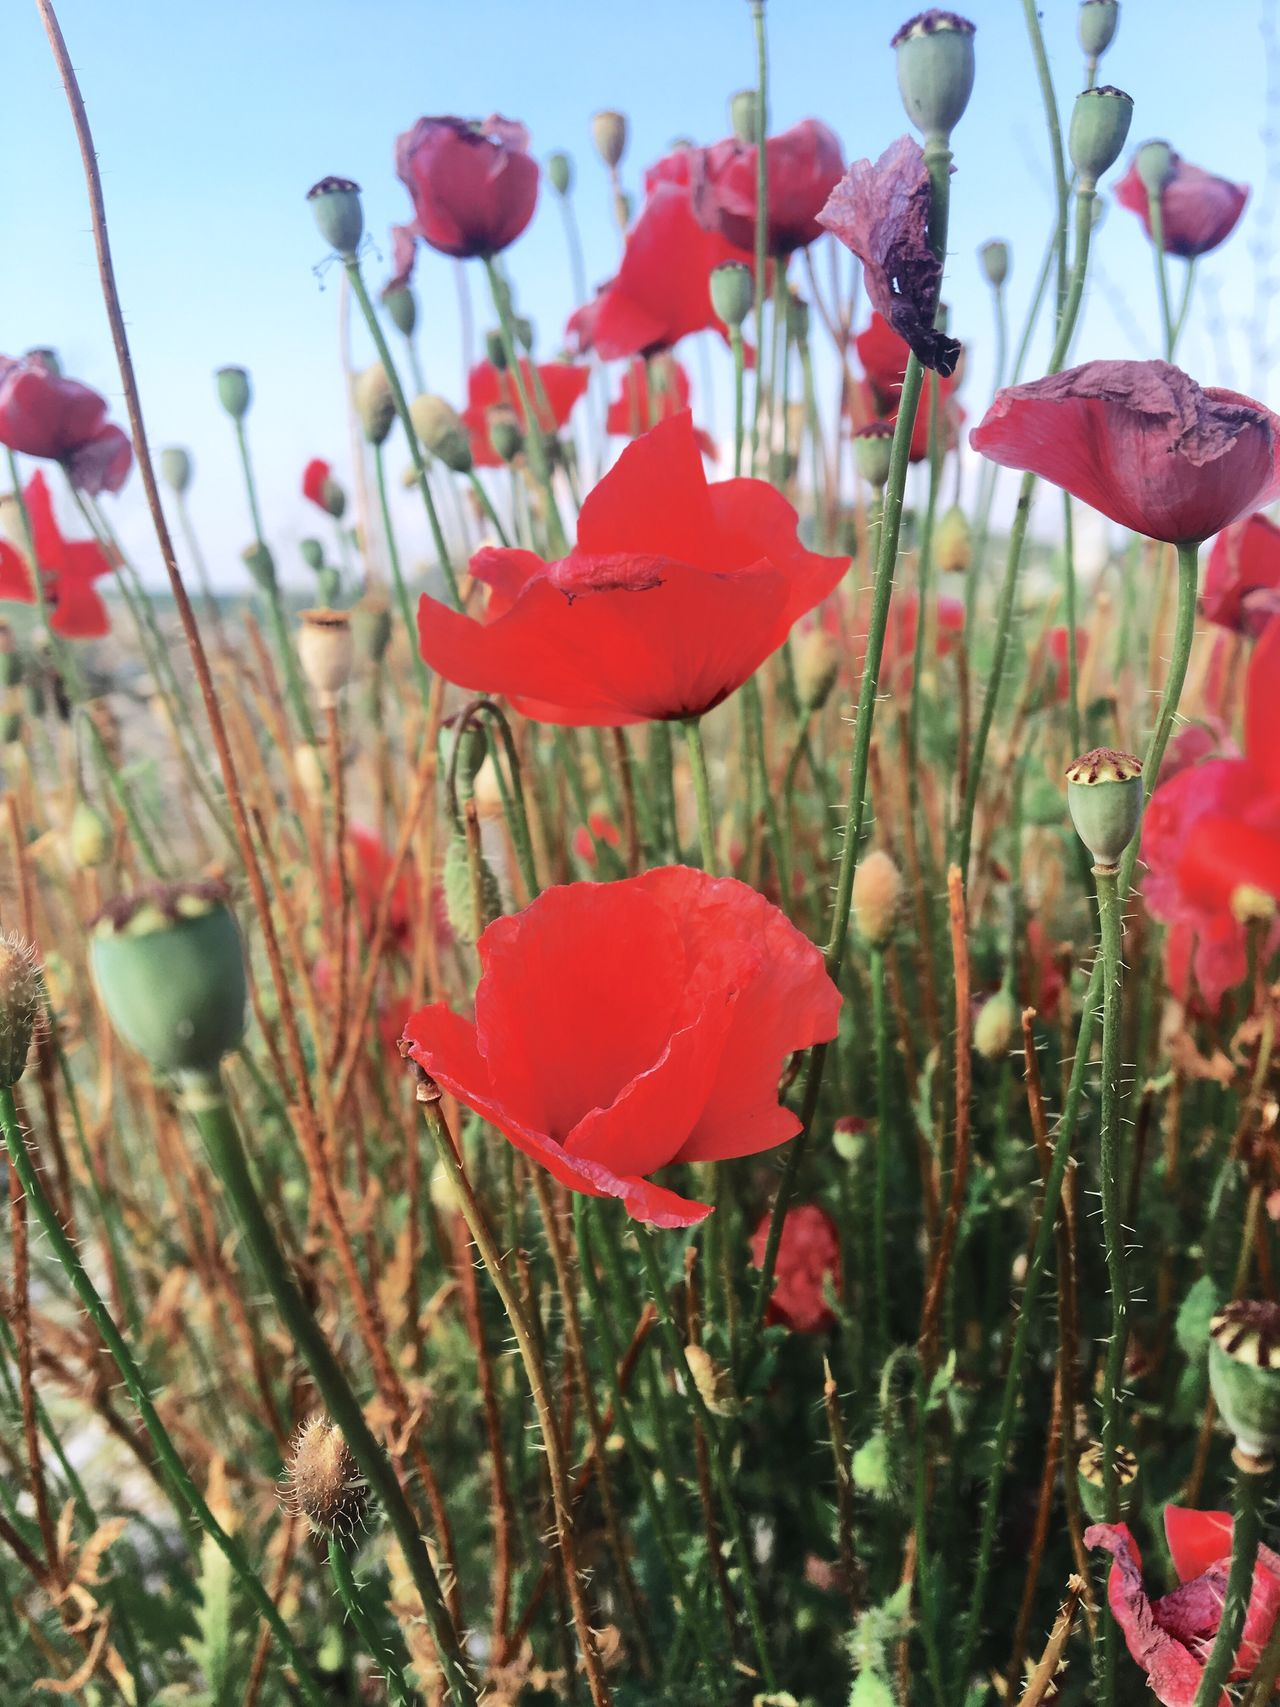 EyeEmNewHere Flower Growth Beauty In Nature Petal Nature Plant Fragility Freshness No People Blooming Flower Head Red Outdoors Day Poppy Close-up